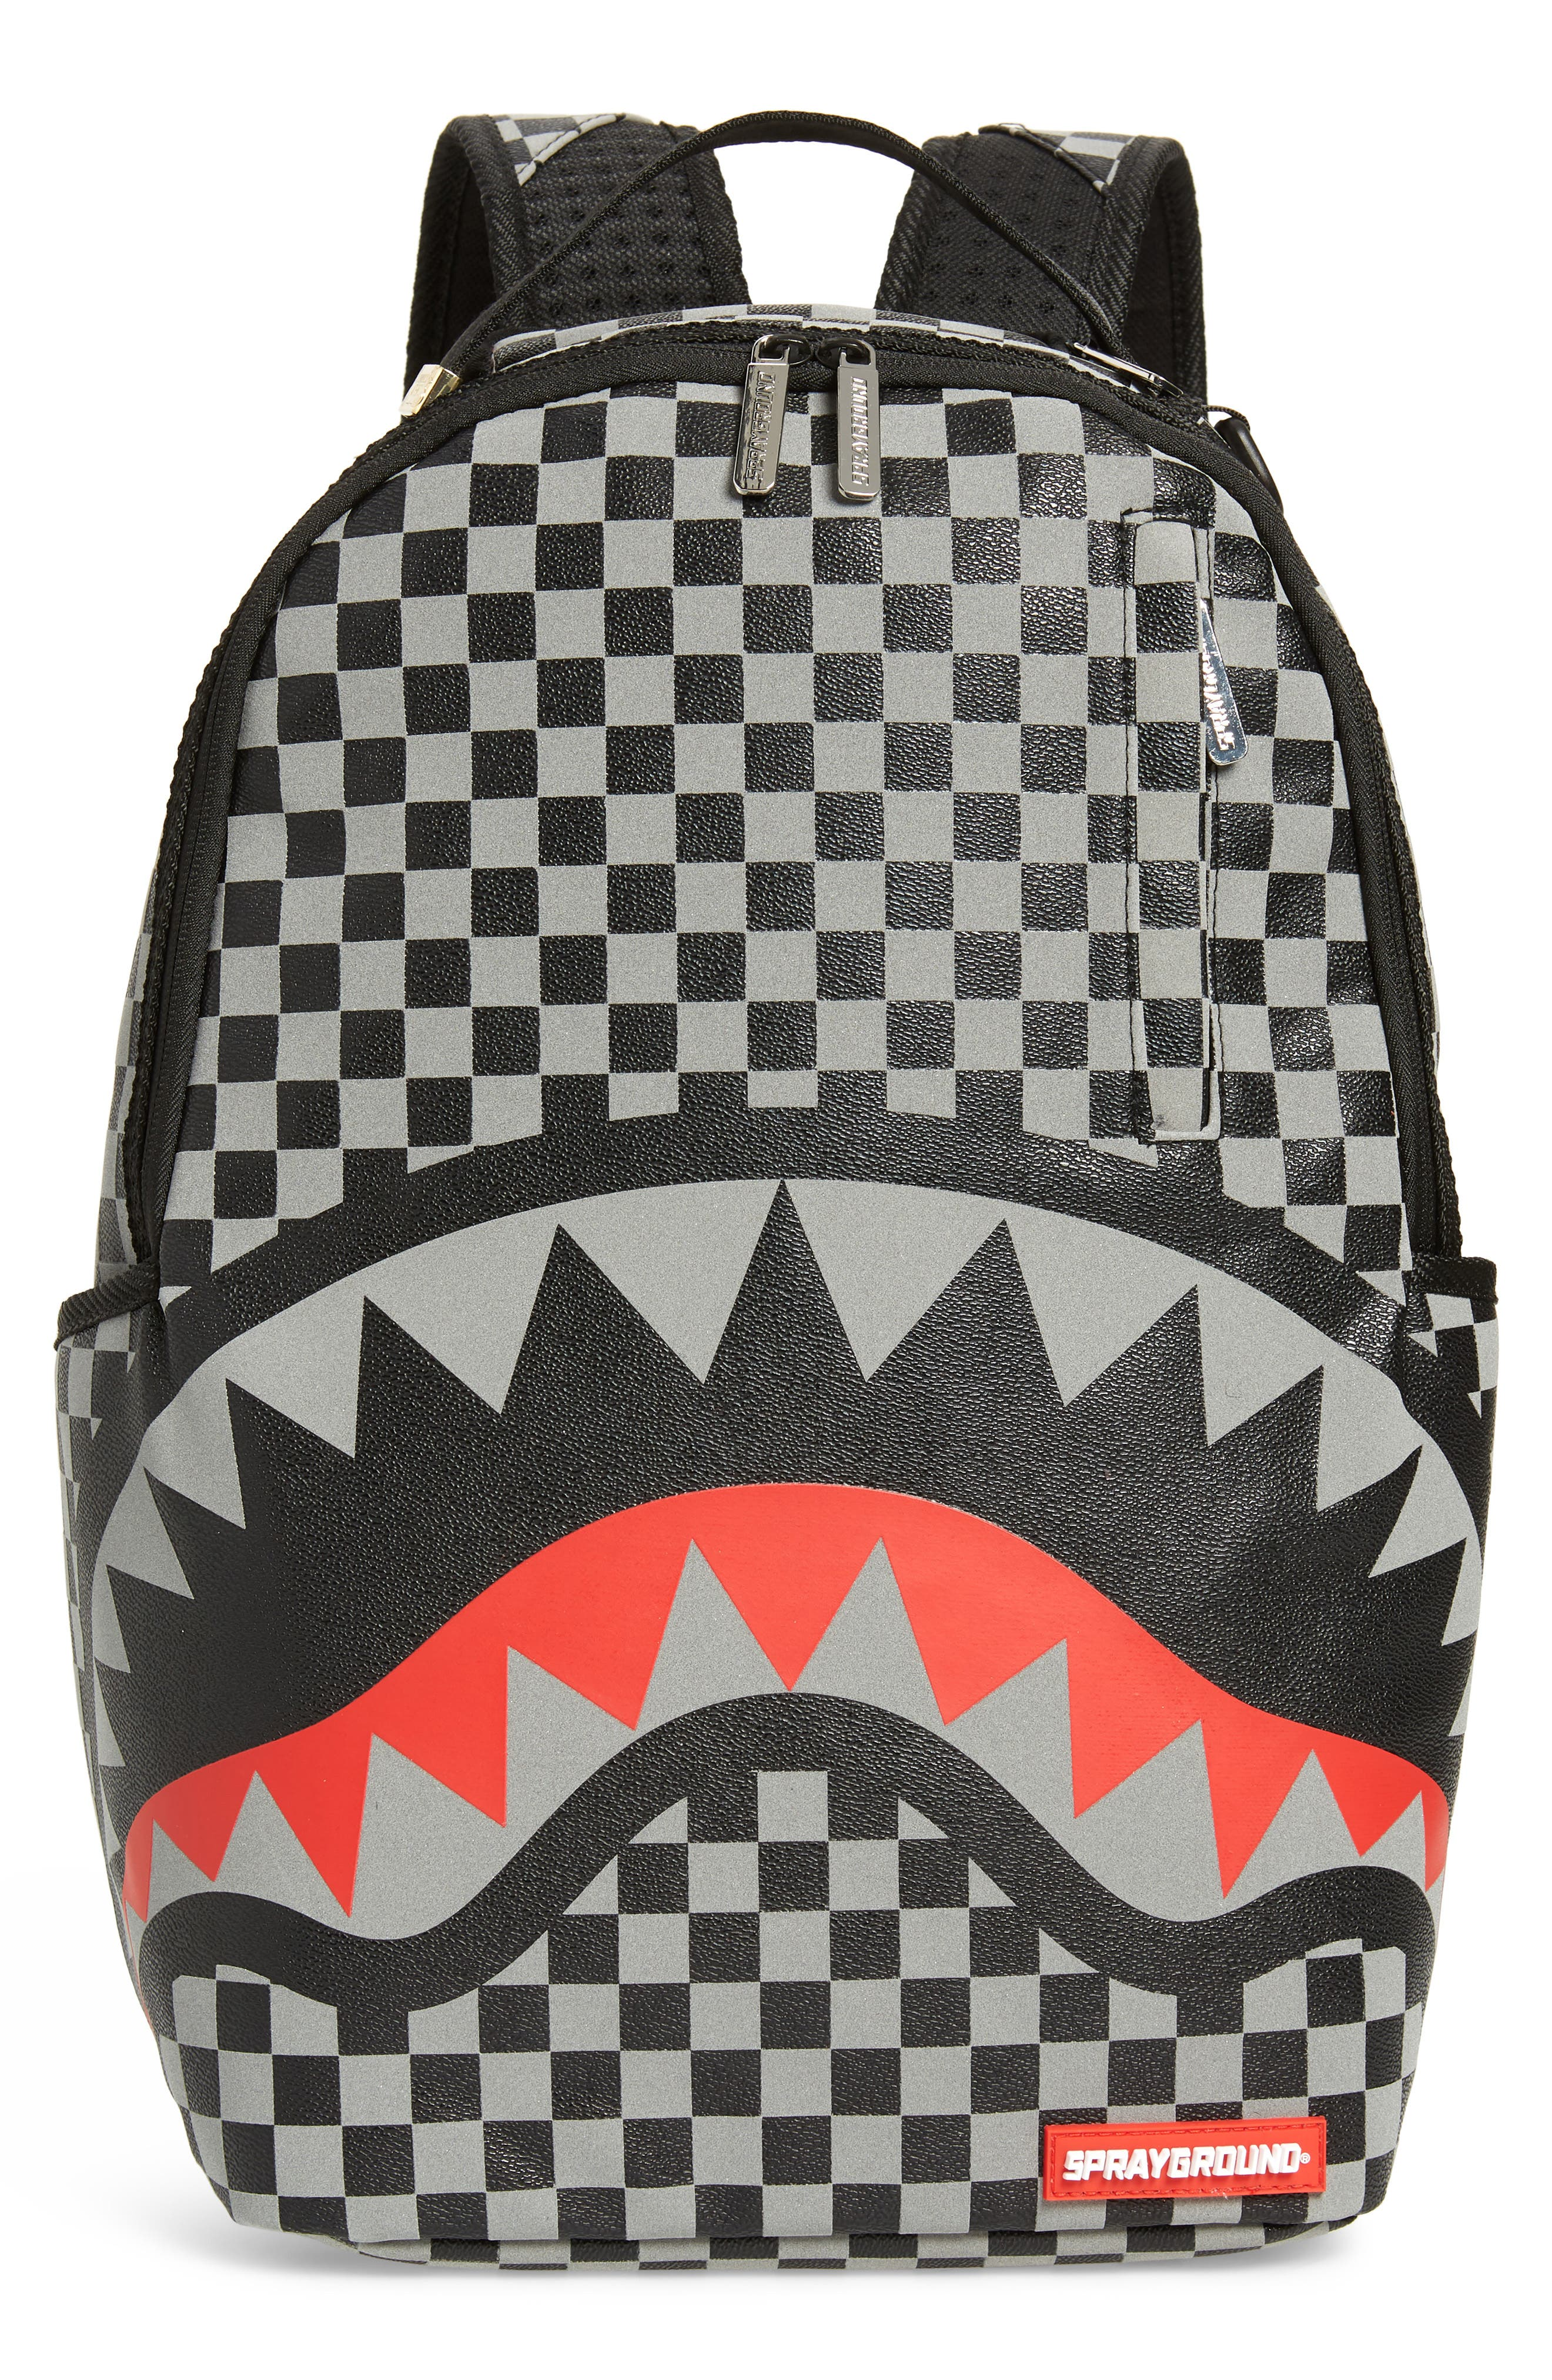 Sprayground Sharks In Paris Faux Leather Backpack - Black